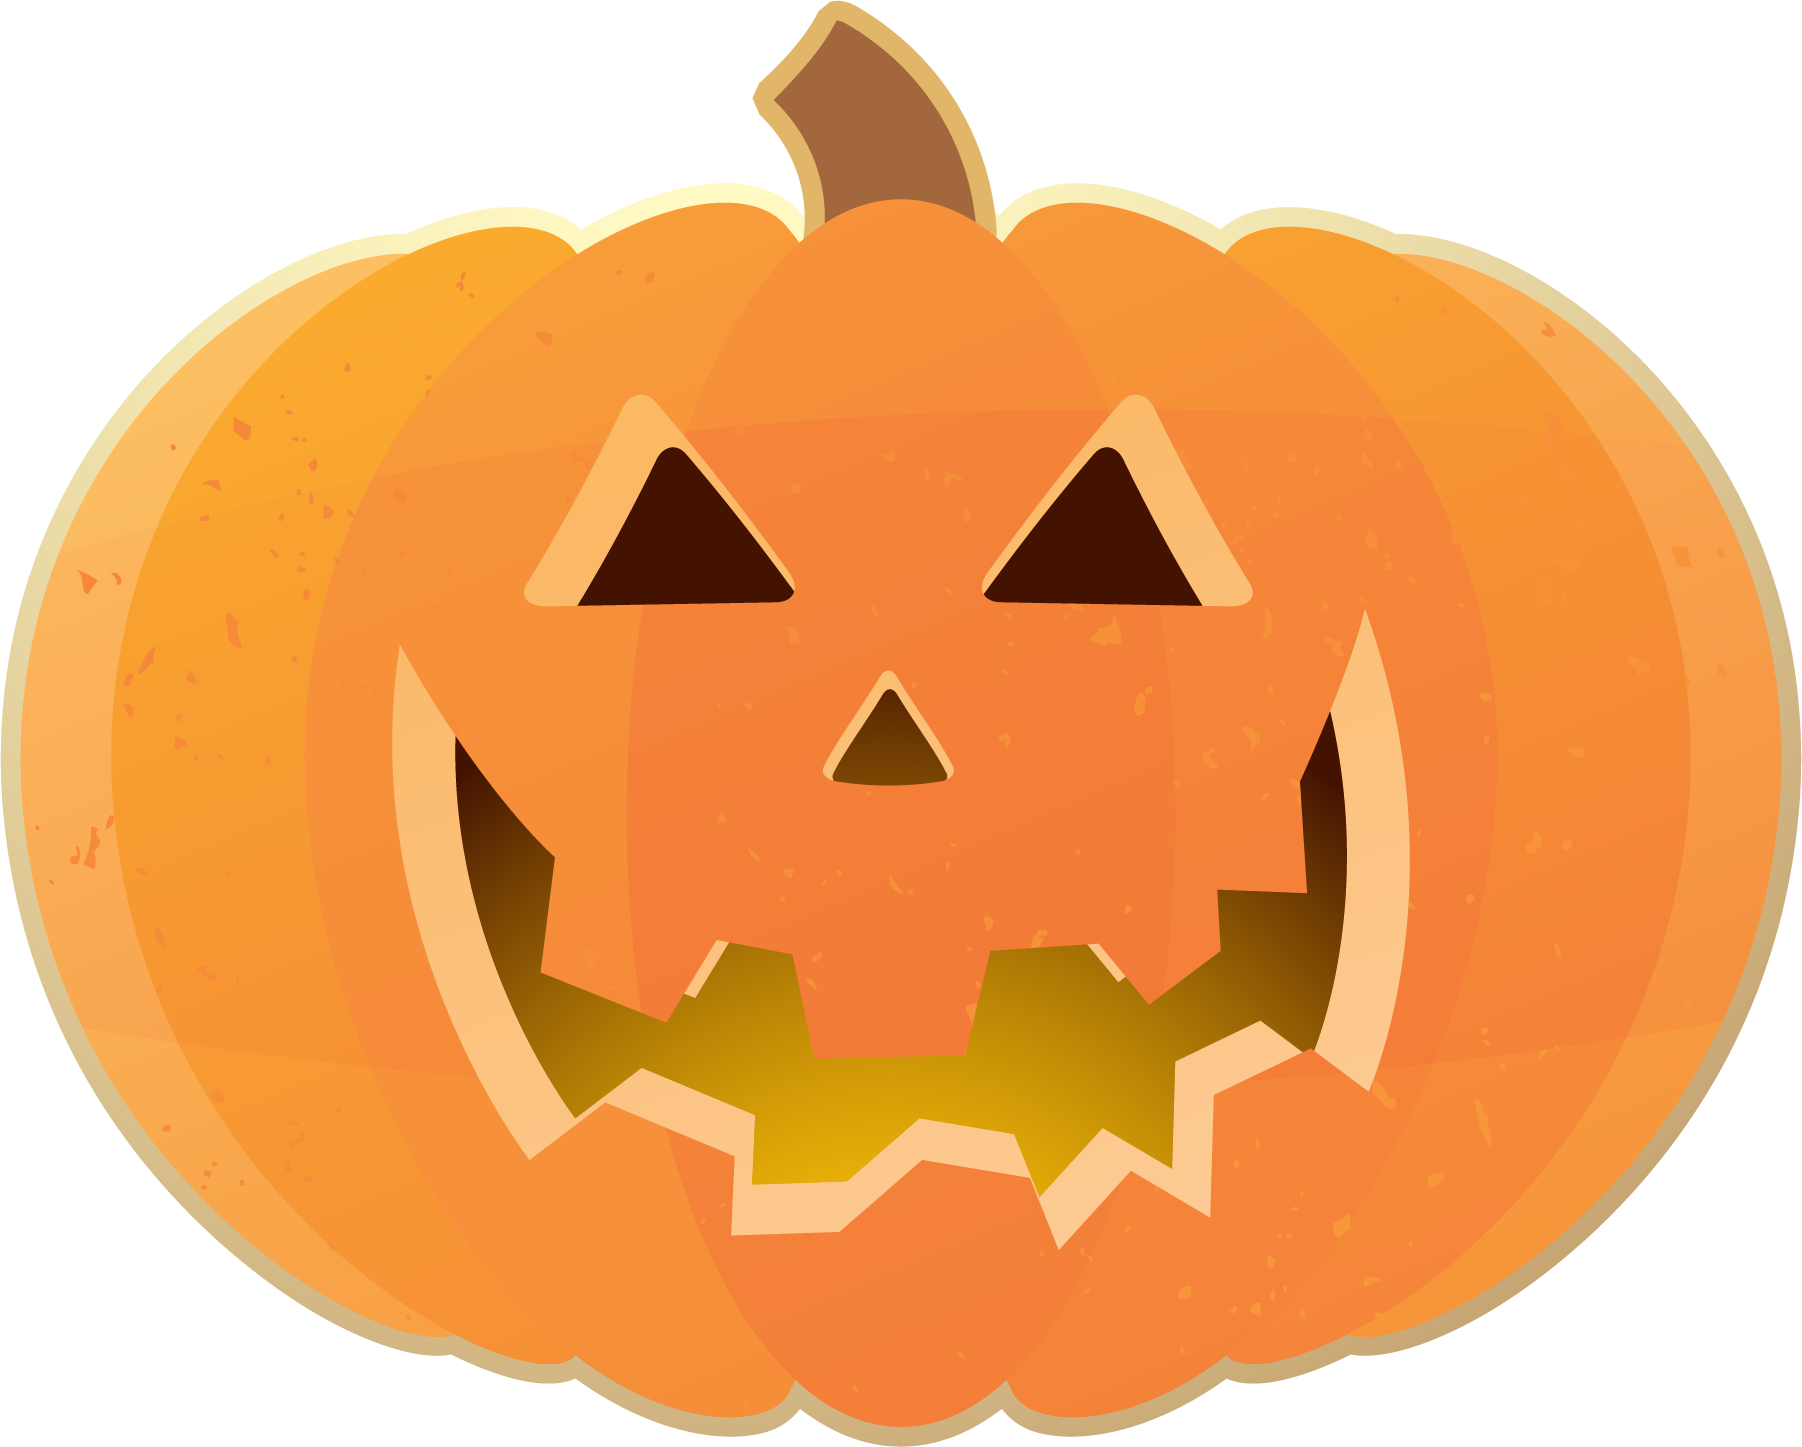 Pumkin vector hand drawn. Pumpkin drawing at getdrawings